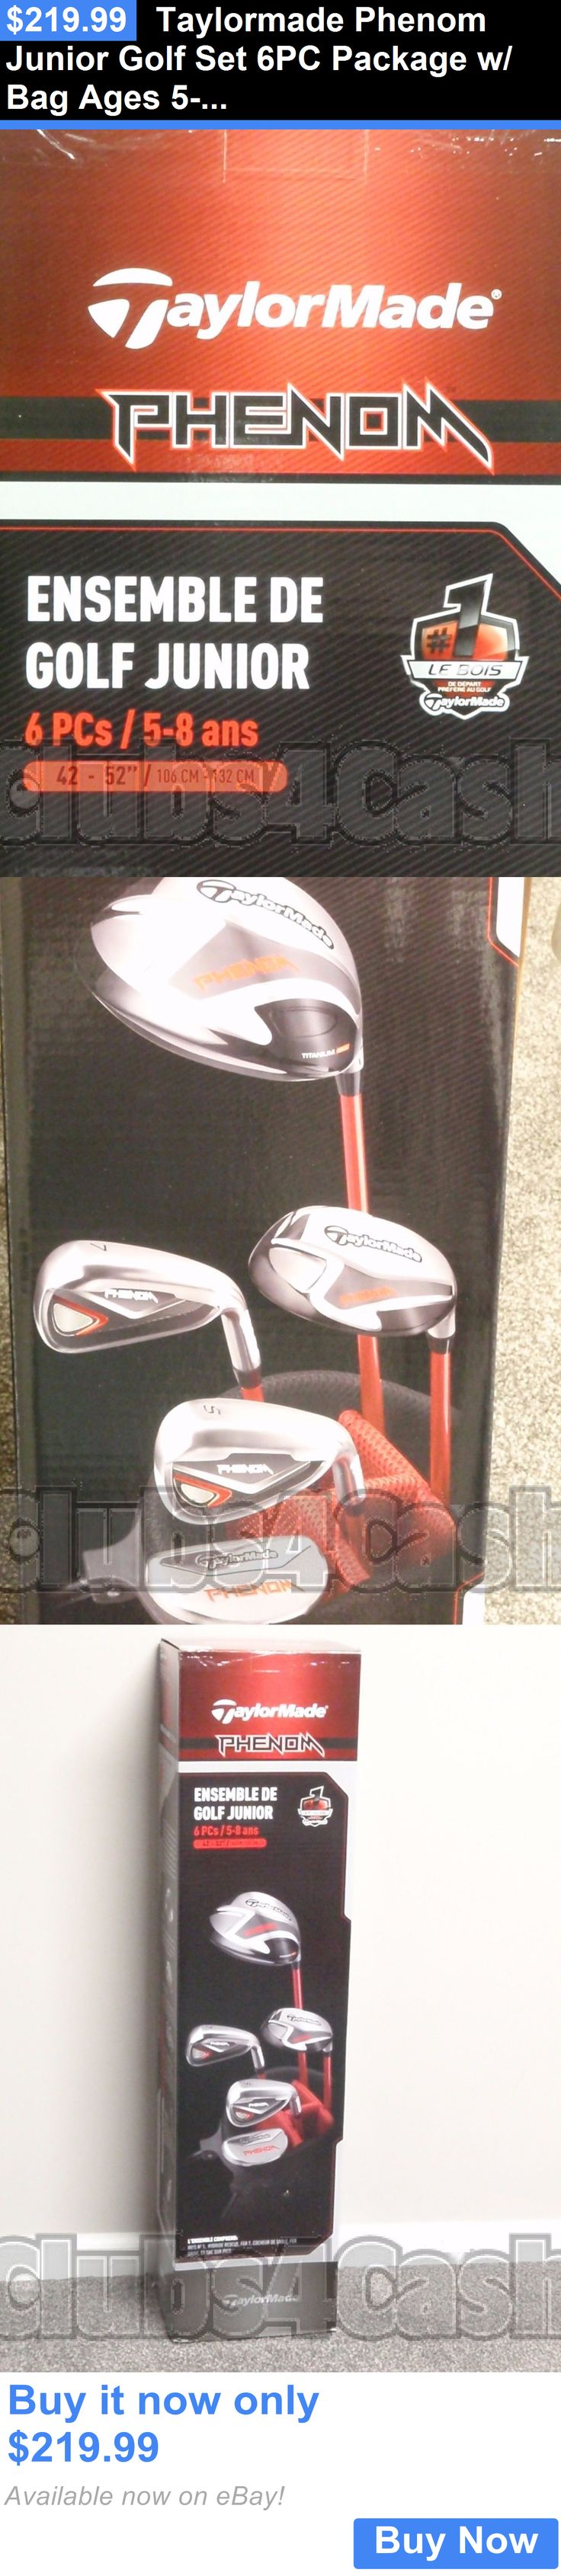 sporting goods: Taylormade Phenom Junior Golf Set 6Pc Package W/ Bag Ages 5-8 New In Box BUY IT NOW ONLY: $219.99